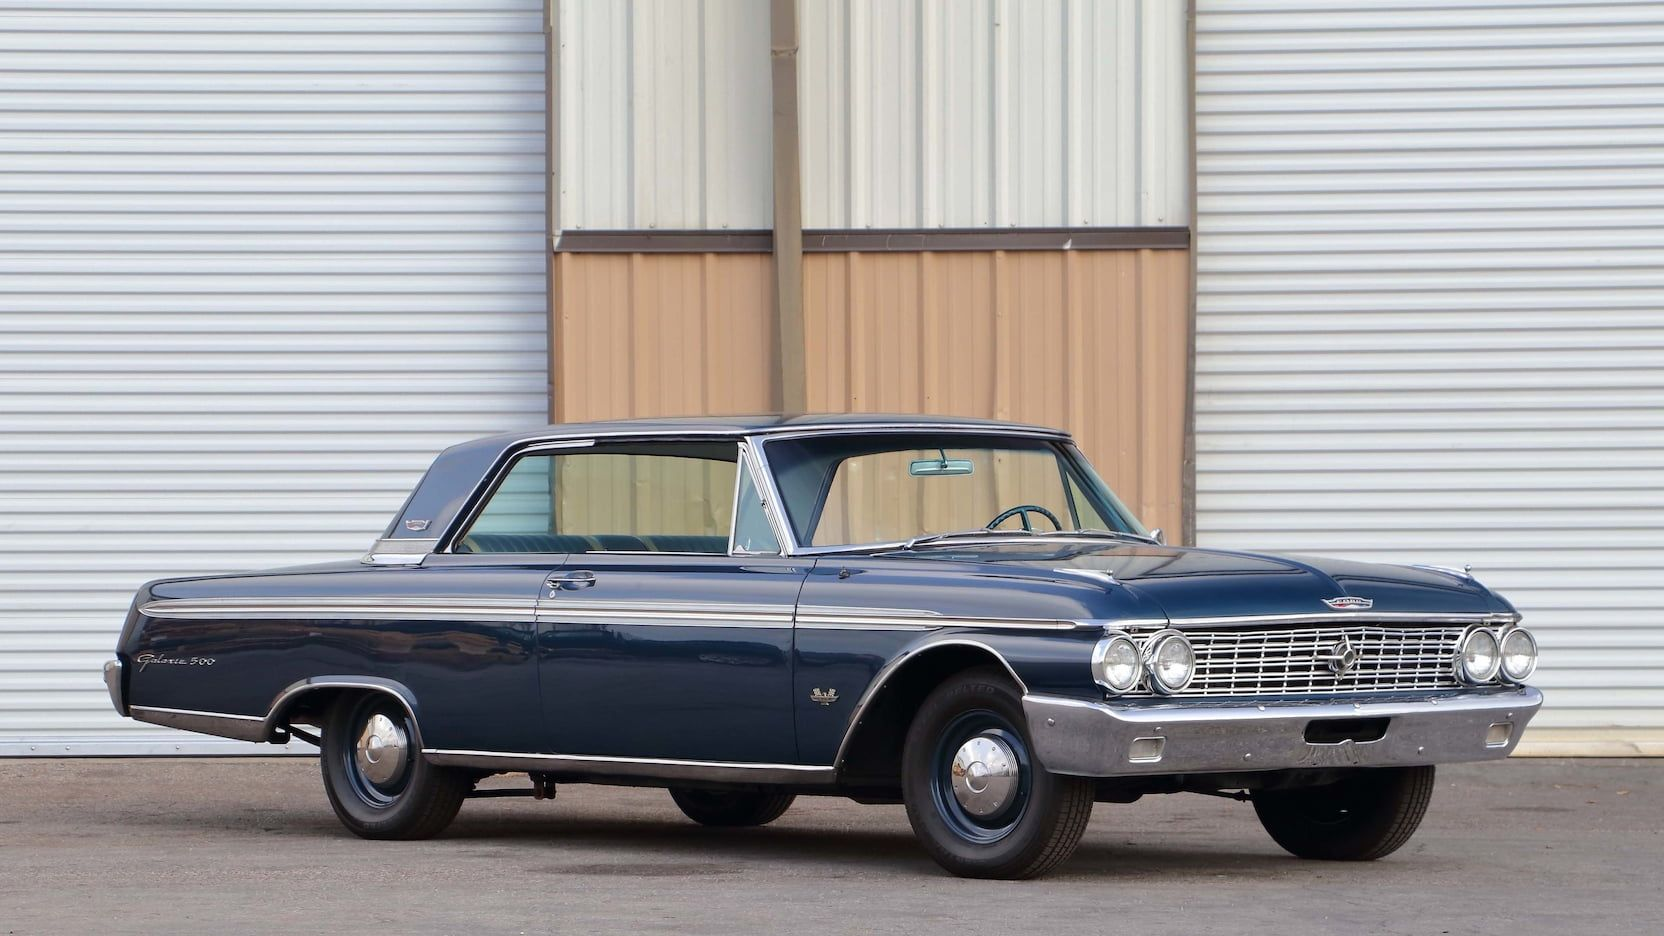 1962 Ford Galaxie 500 406 405hp Tripower V8 4speed Stick 4 11 Limited Slip Ford Galaxie Ford Galaxie 500 Galaxie